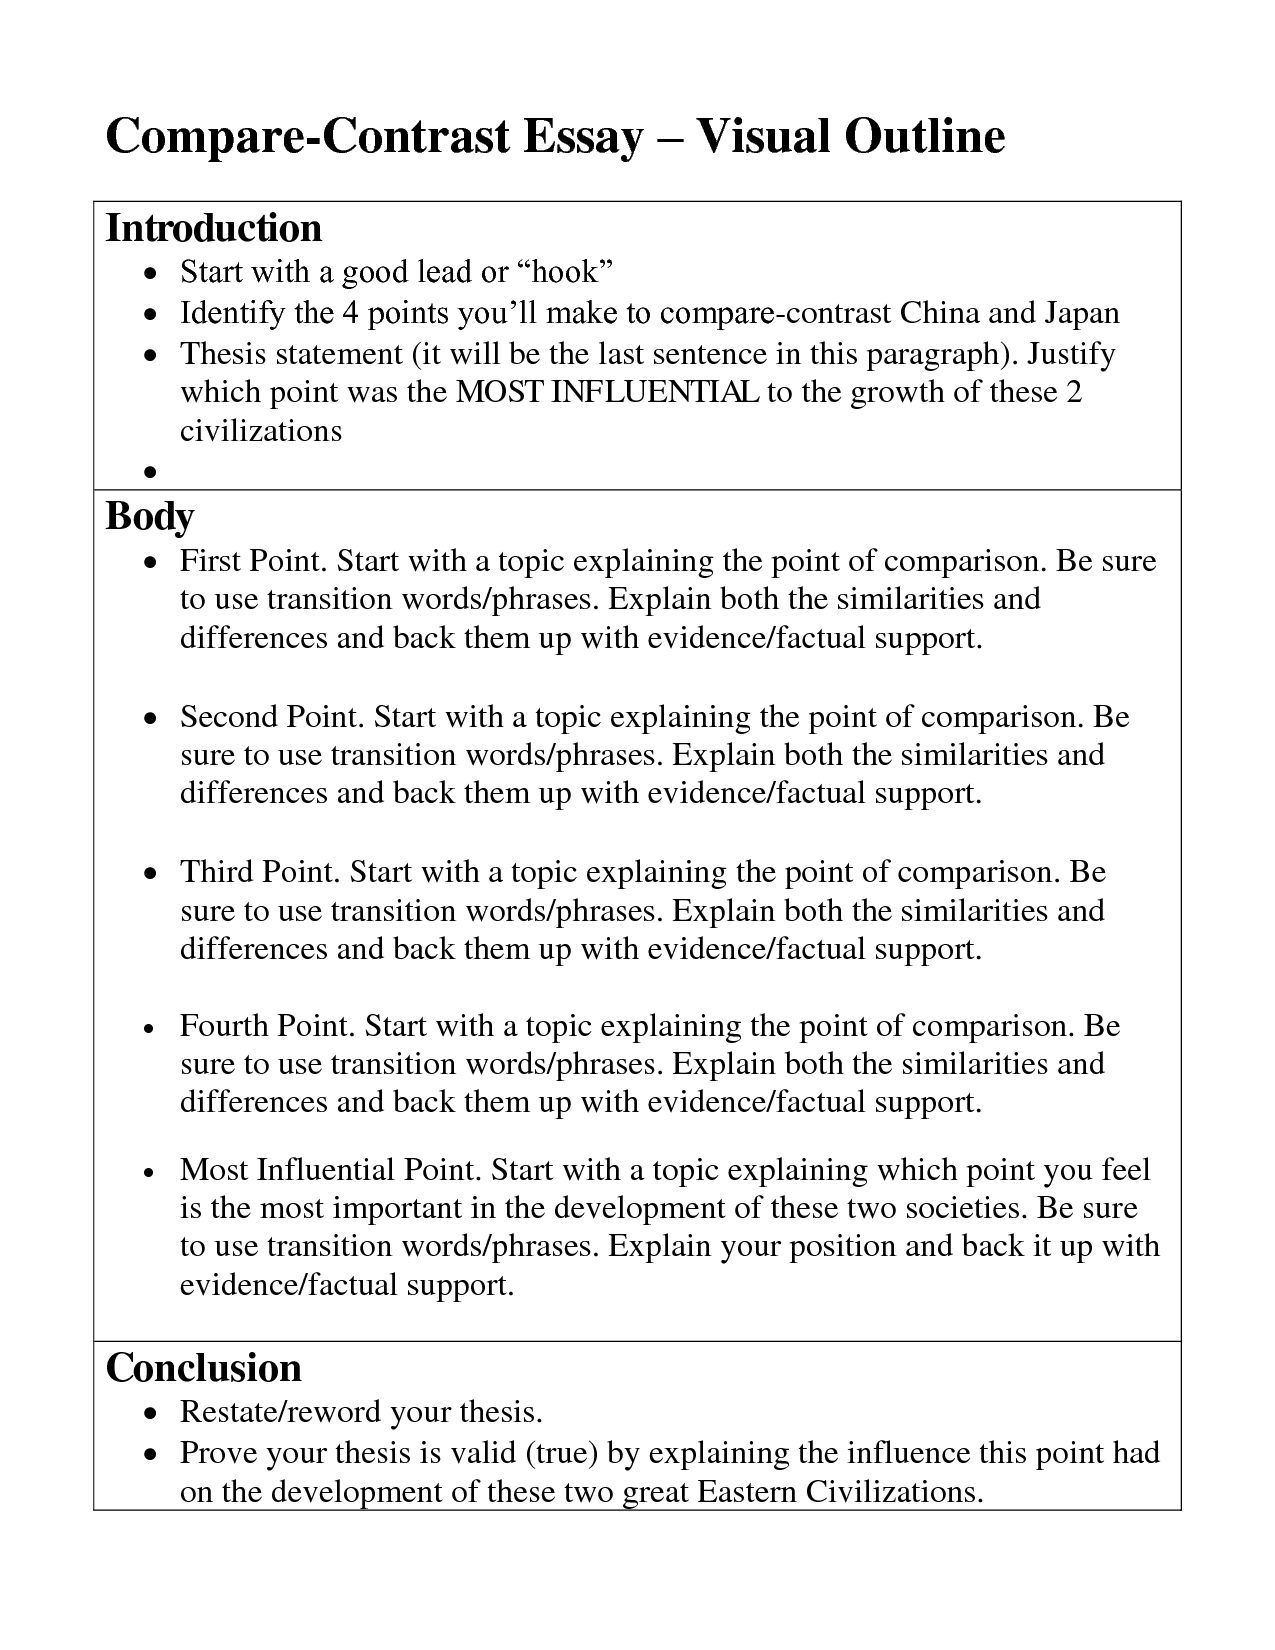 002 Essay Example How To Write Comparison And Unforgettable A Contrast An Introduction Conclusion For Compare Middle School Thesis Full